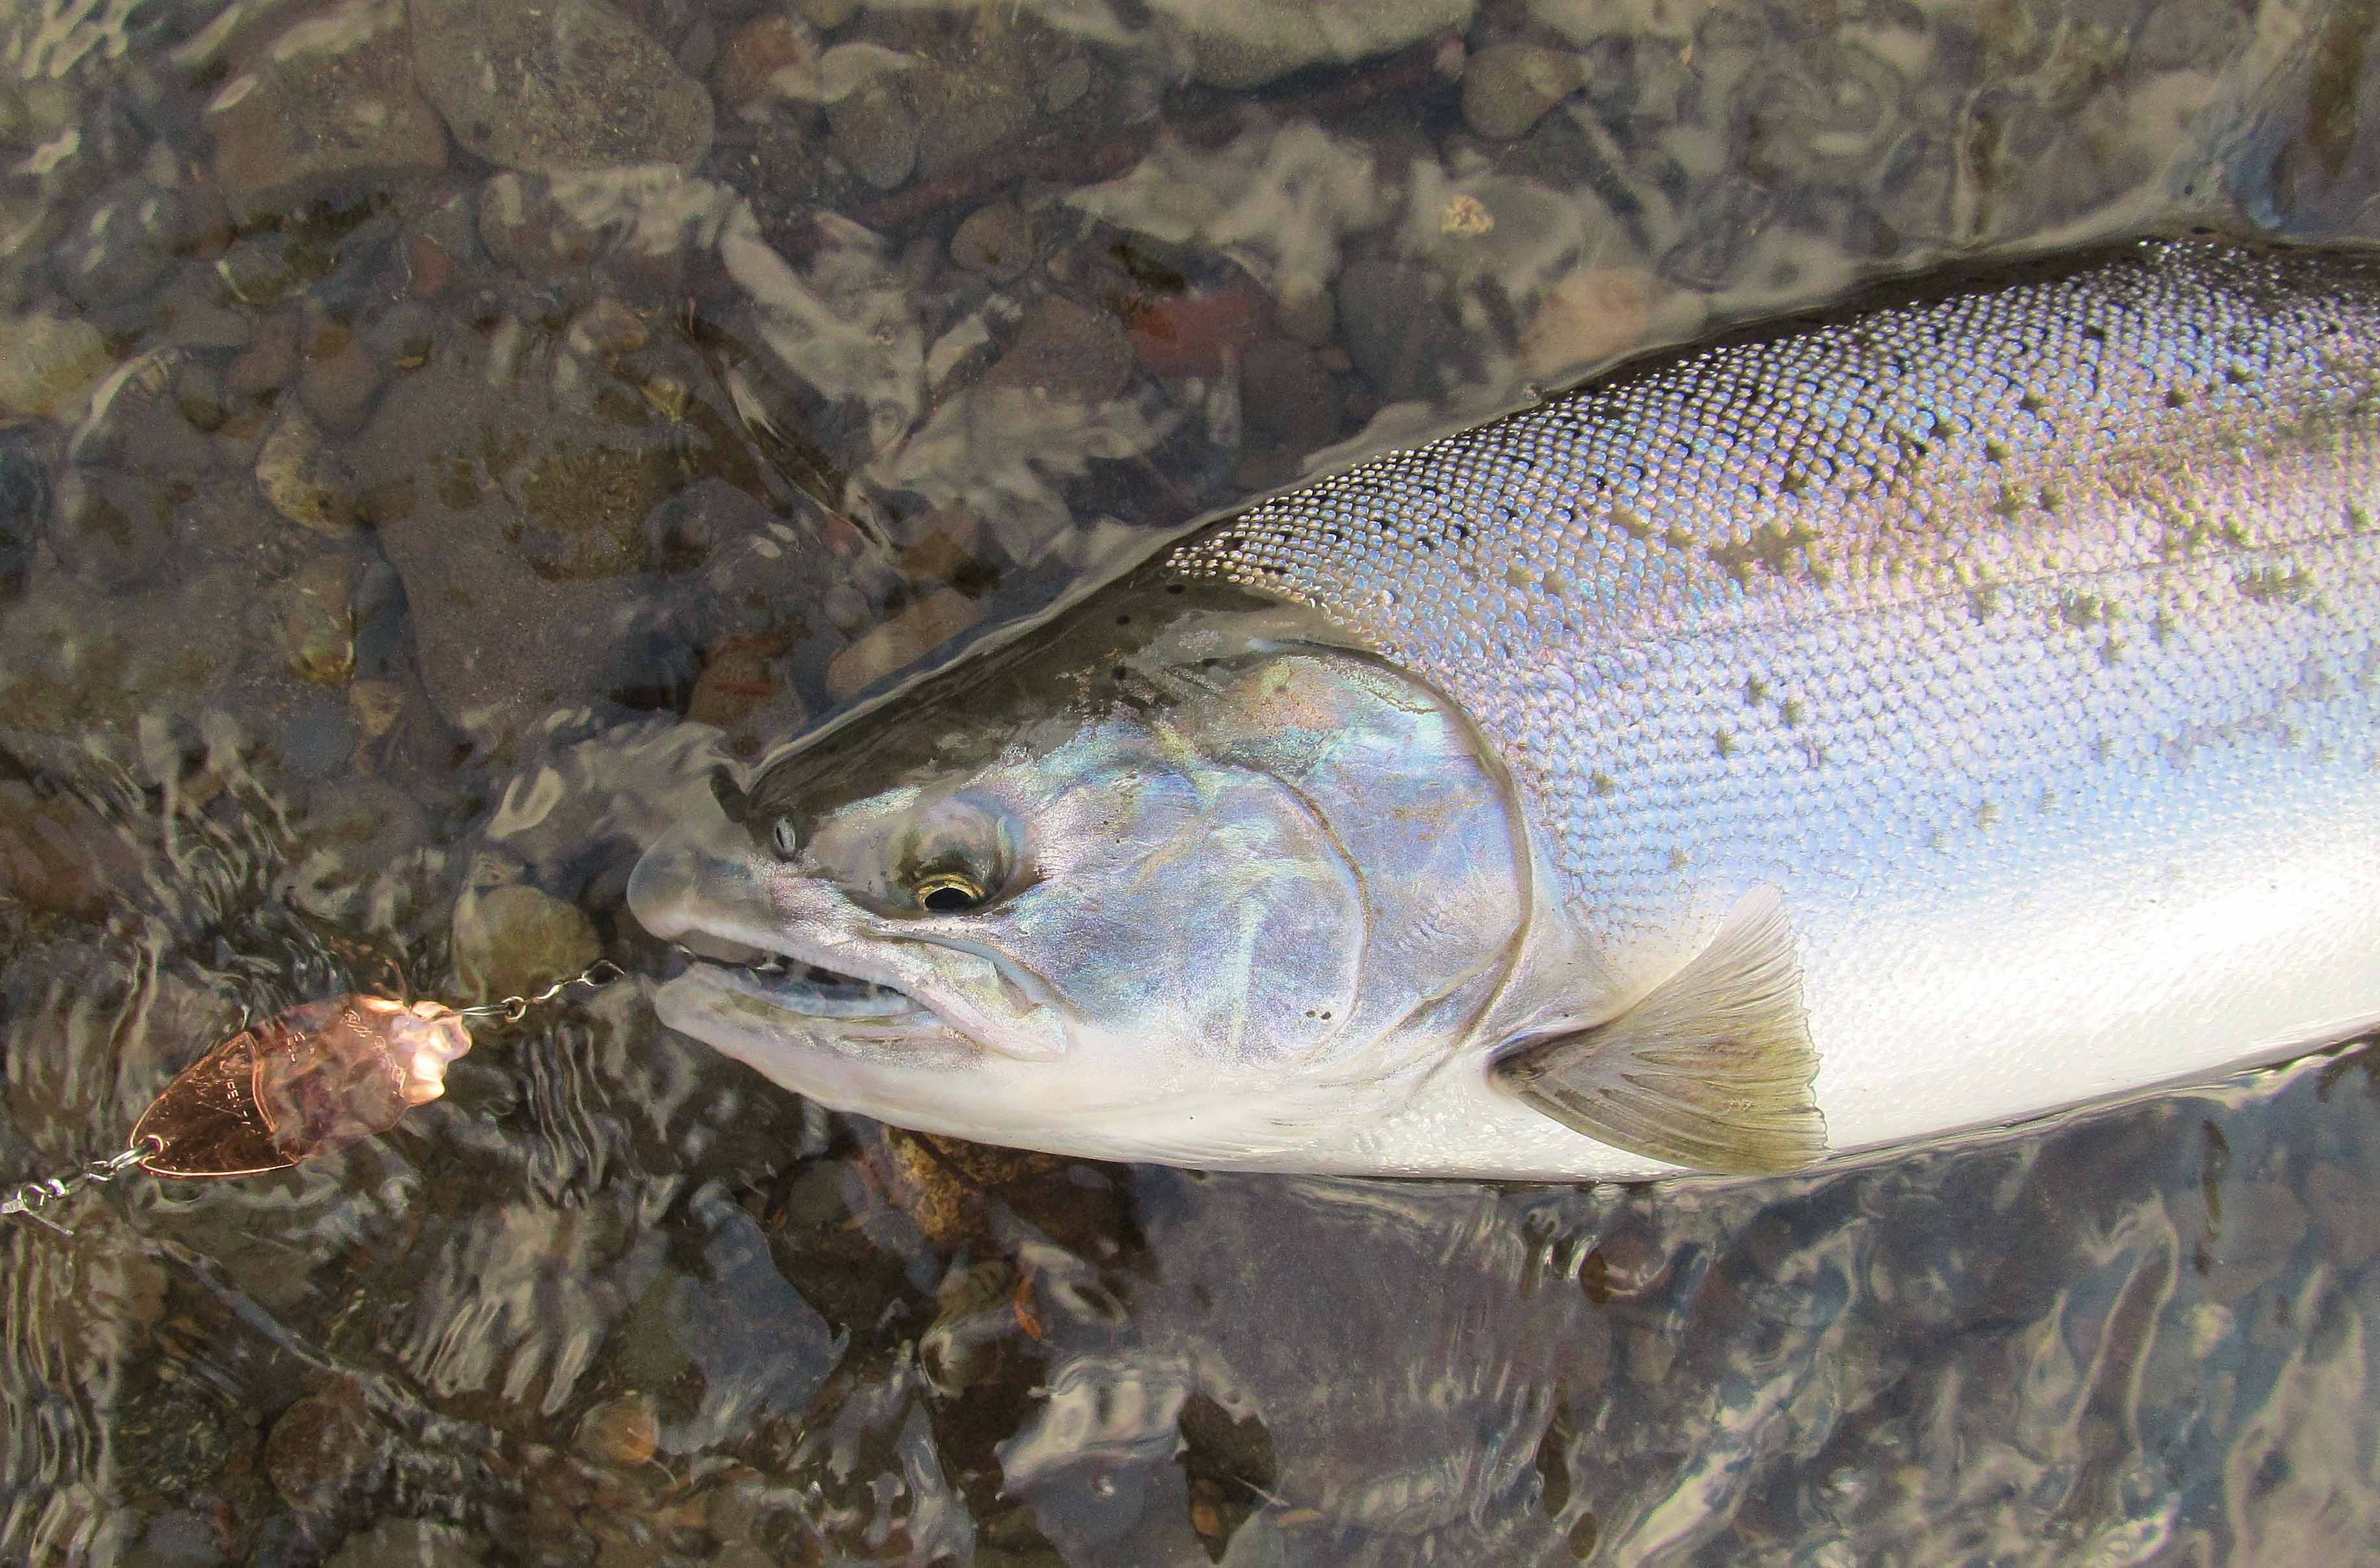 Spoon and Spinner Fishing With Super Lines for Salmon and